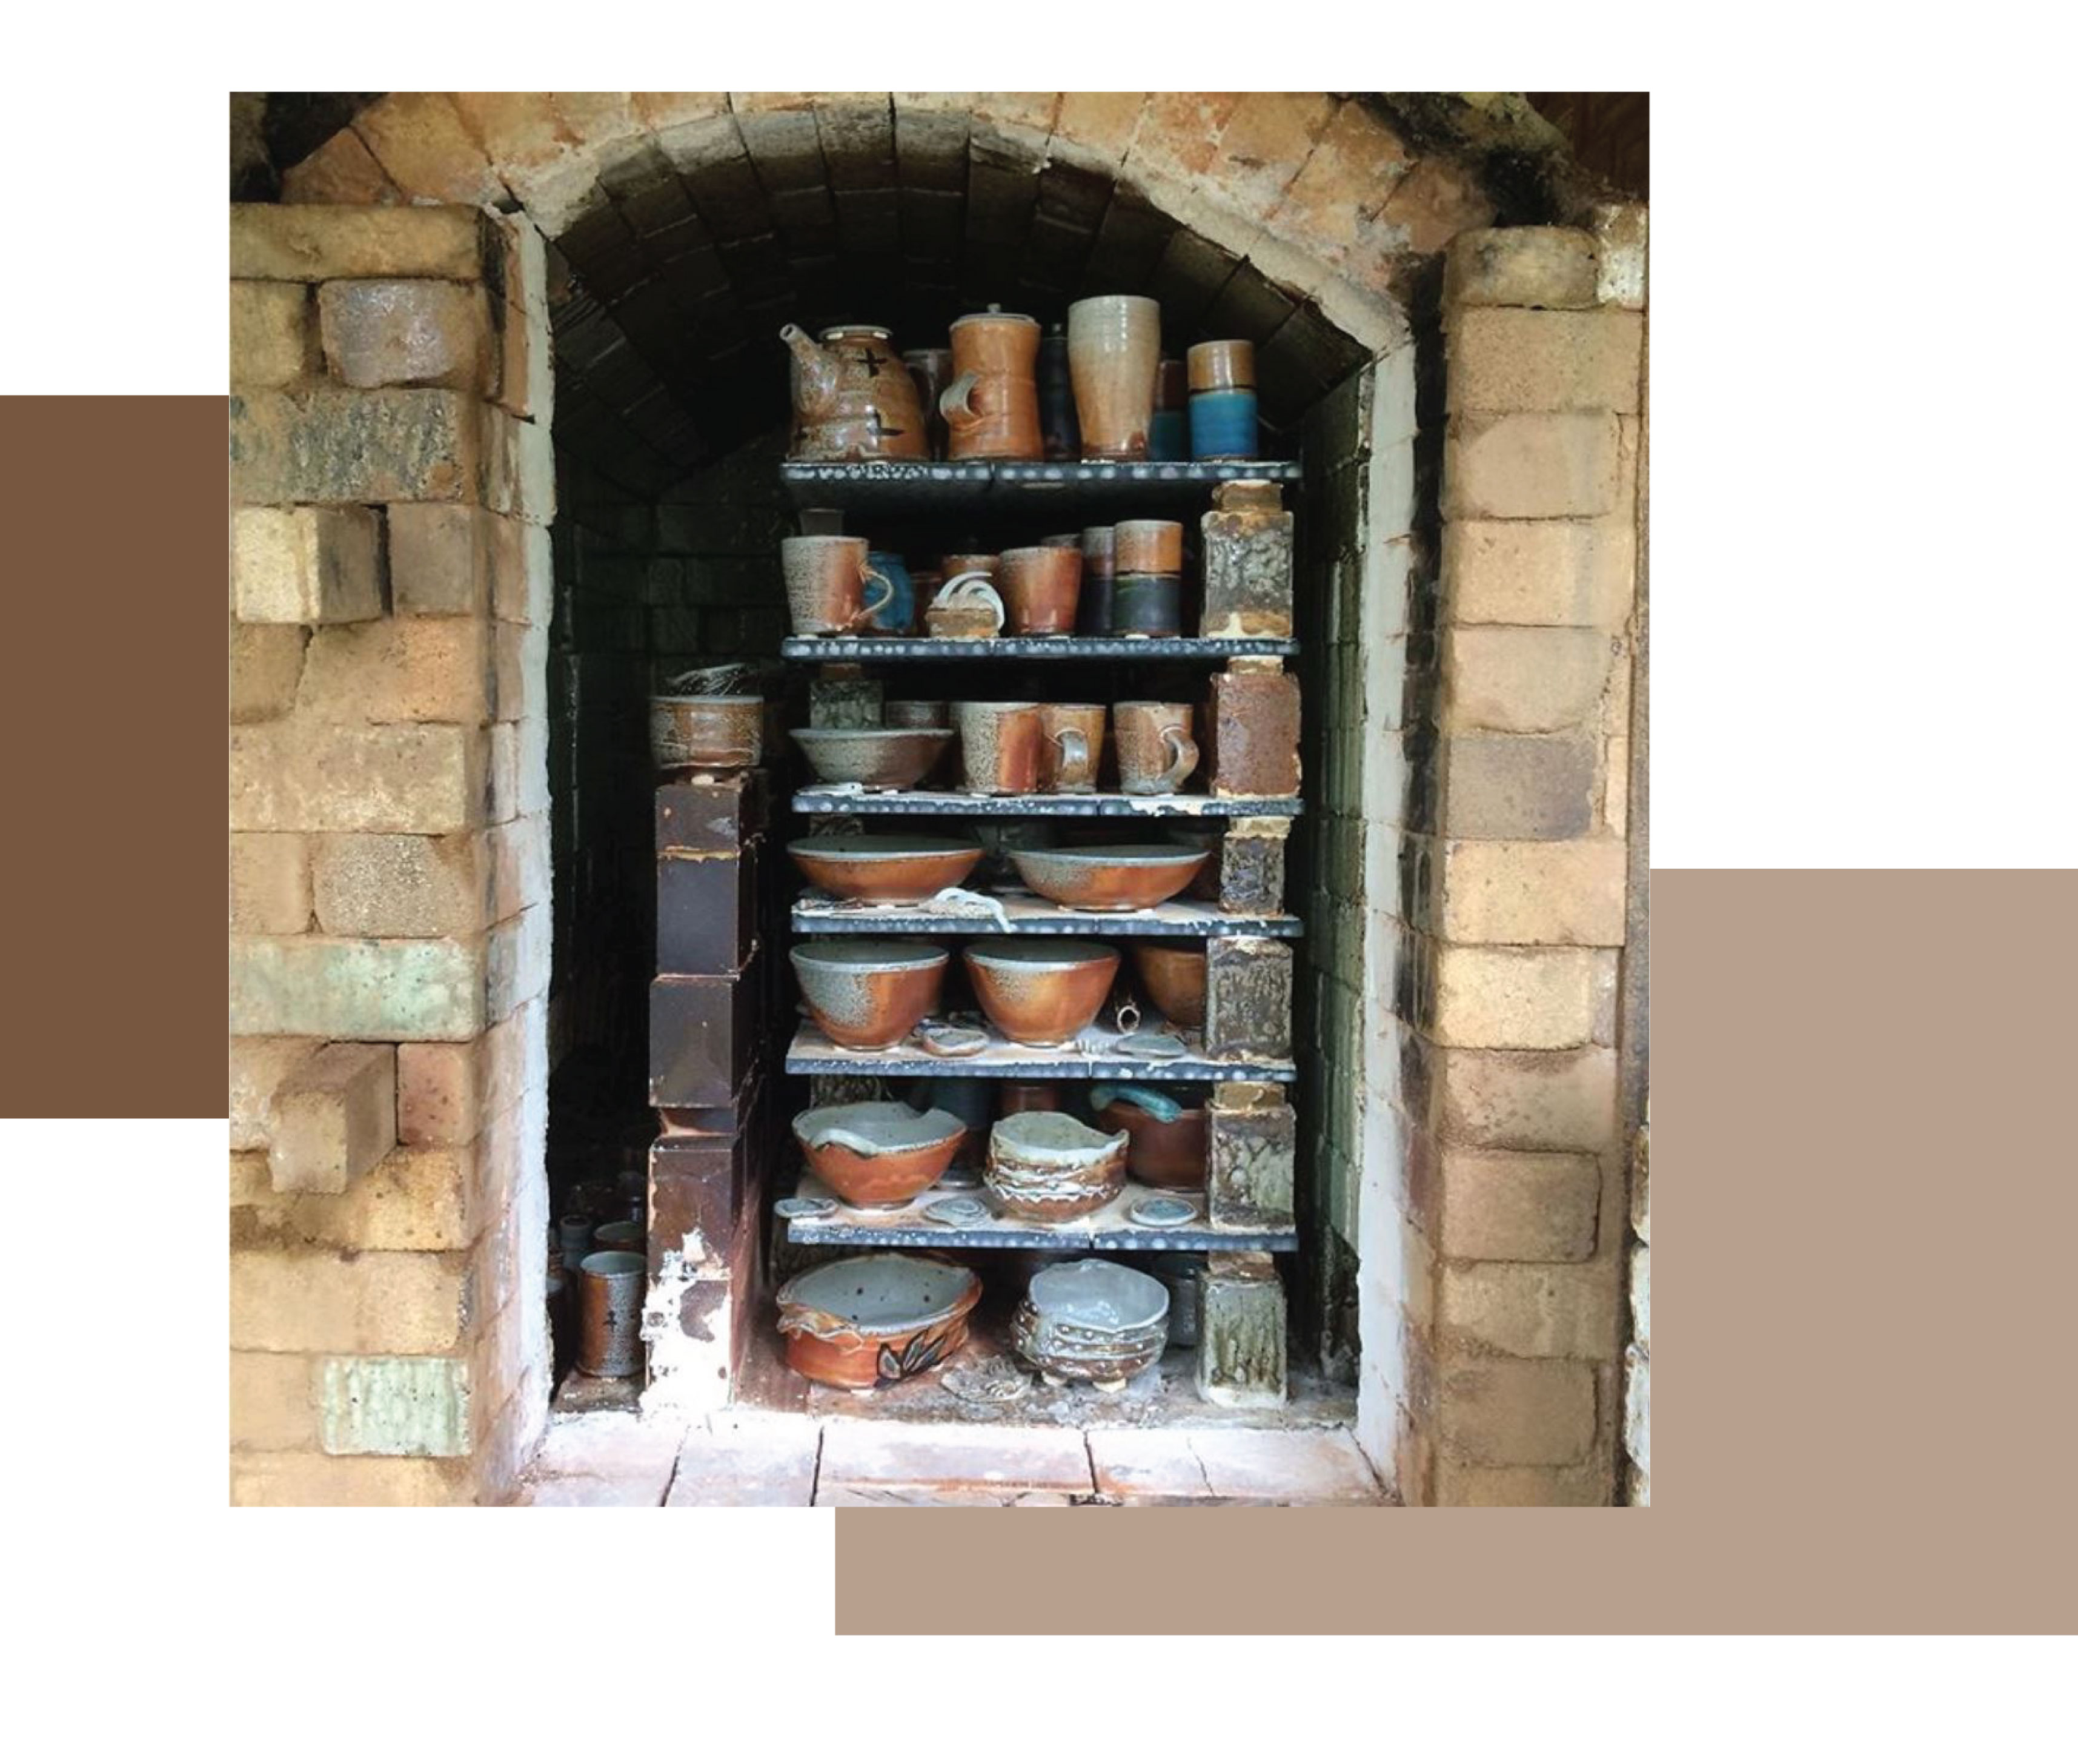 View into an opened wood kiln showing stacks of blue, grey and brown pots, by New Zealand ceramists and potters Duncan Shearer and Charde Honey of Rahu Road Pottery.